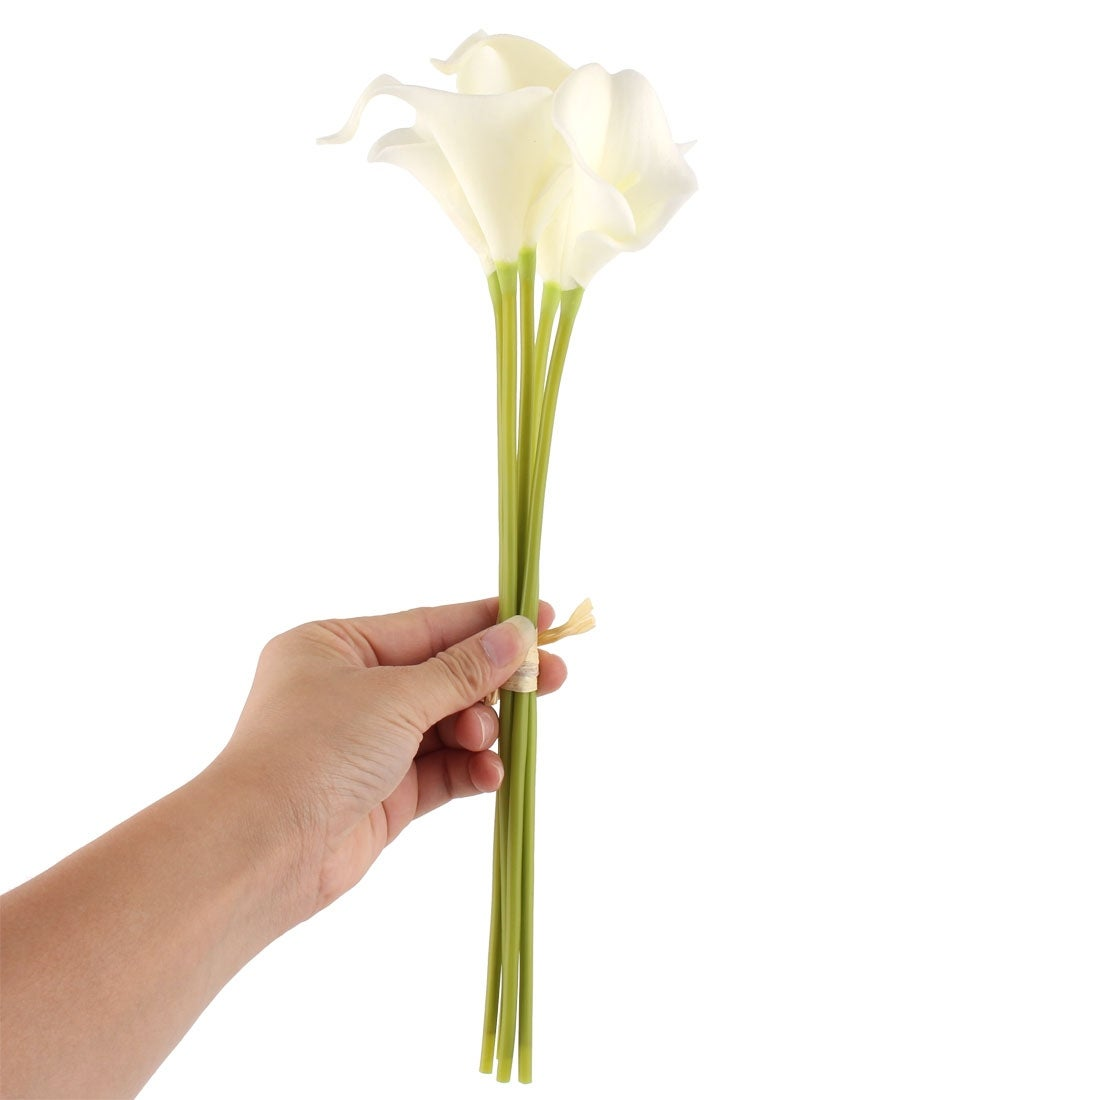 Home wedding office party decor calla lily artificial flower bouquet home wedding office party decor calla lily artificial flower bouquet white 5 pcs free shipping on orders over 45 overstock 24520104 izmirmasajfo